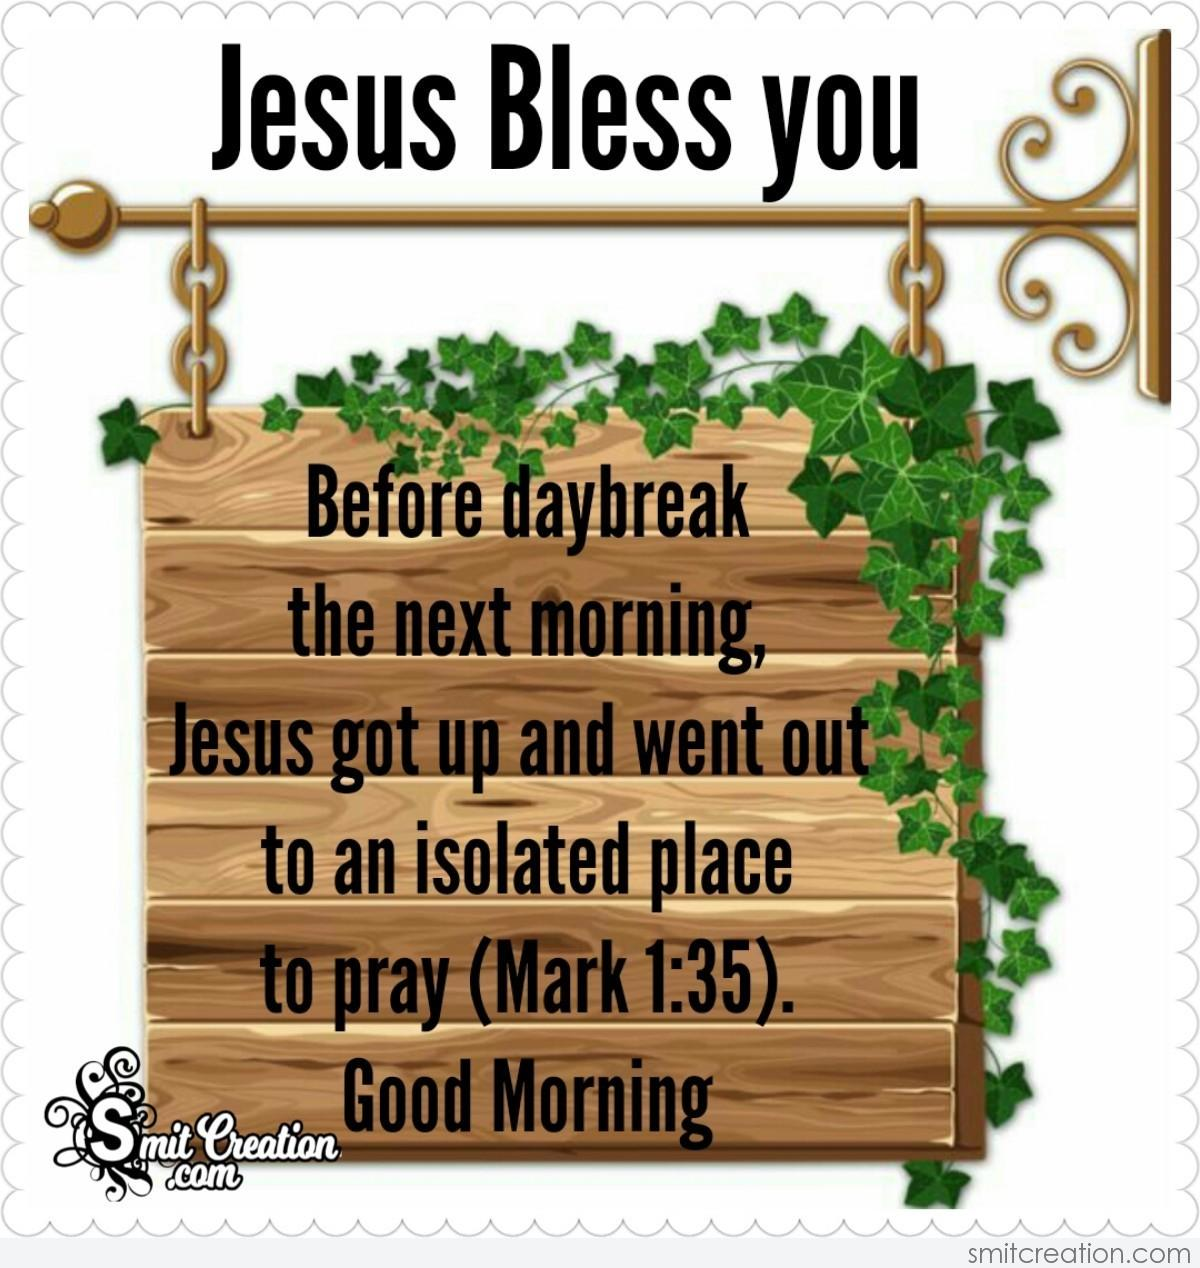 Good Morning Bible Verses Pictures and Graphics